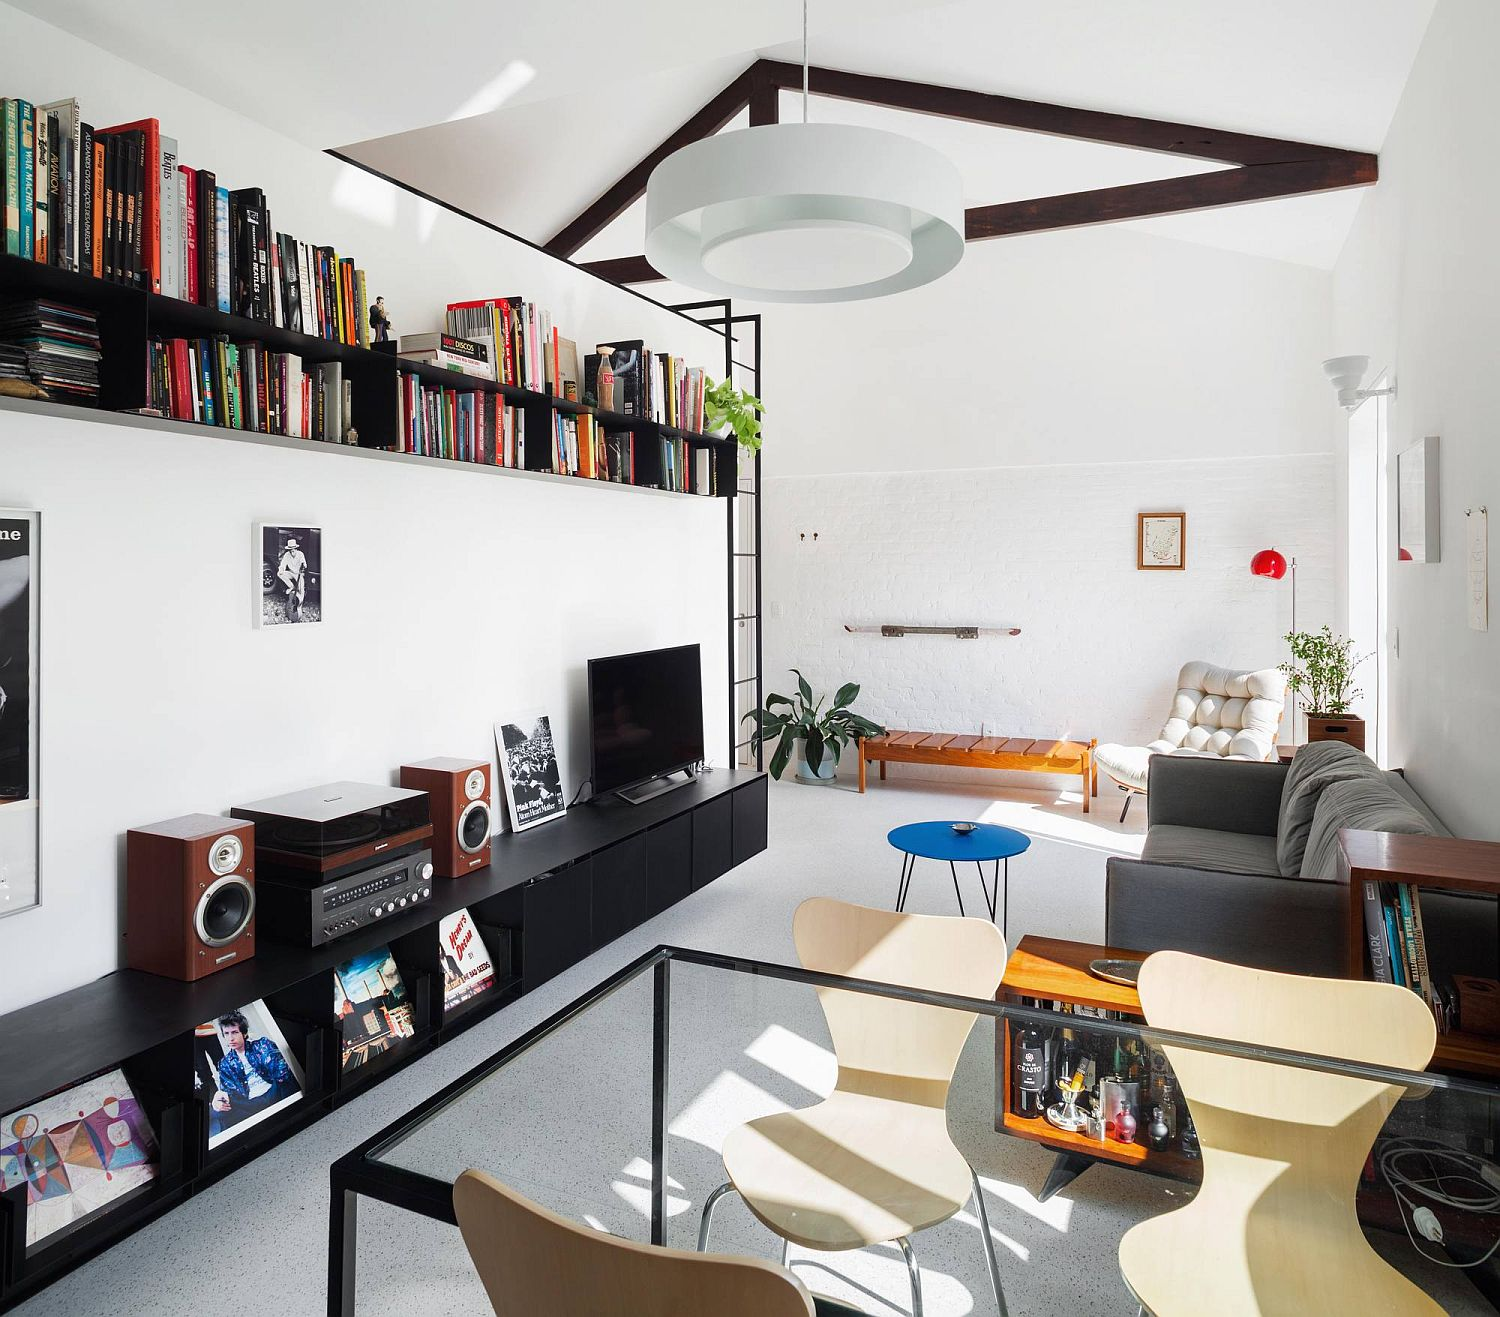 Designing the small living room perfectly with the right decor and shelving